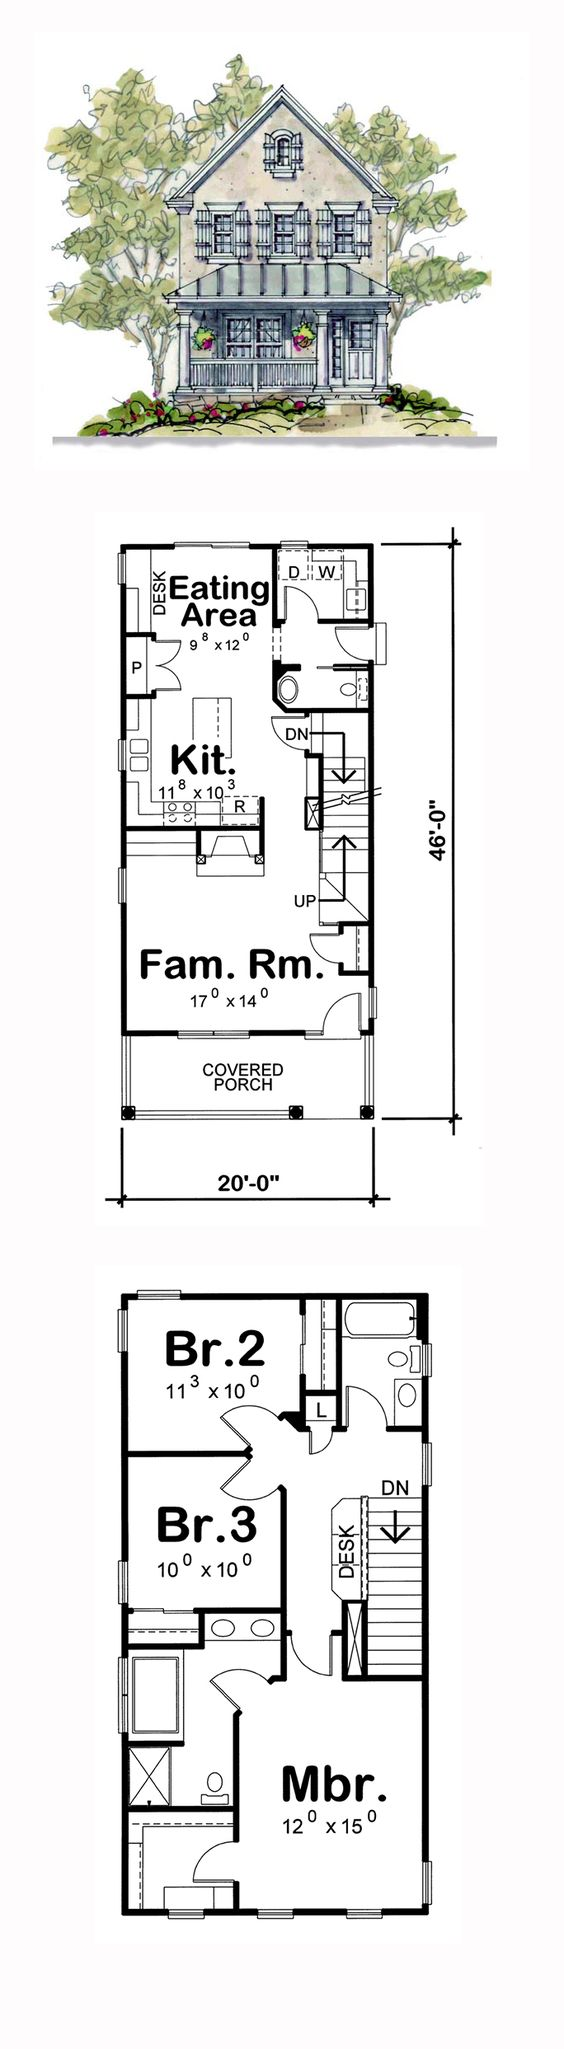 Narrow lot house plans house plans and bedrooms on pinterest Narrow lot house plans